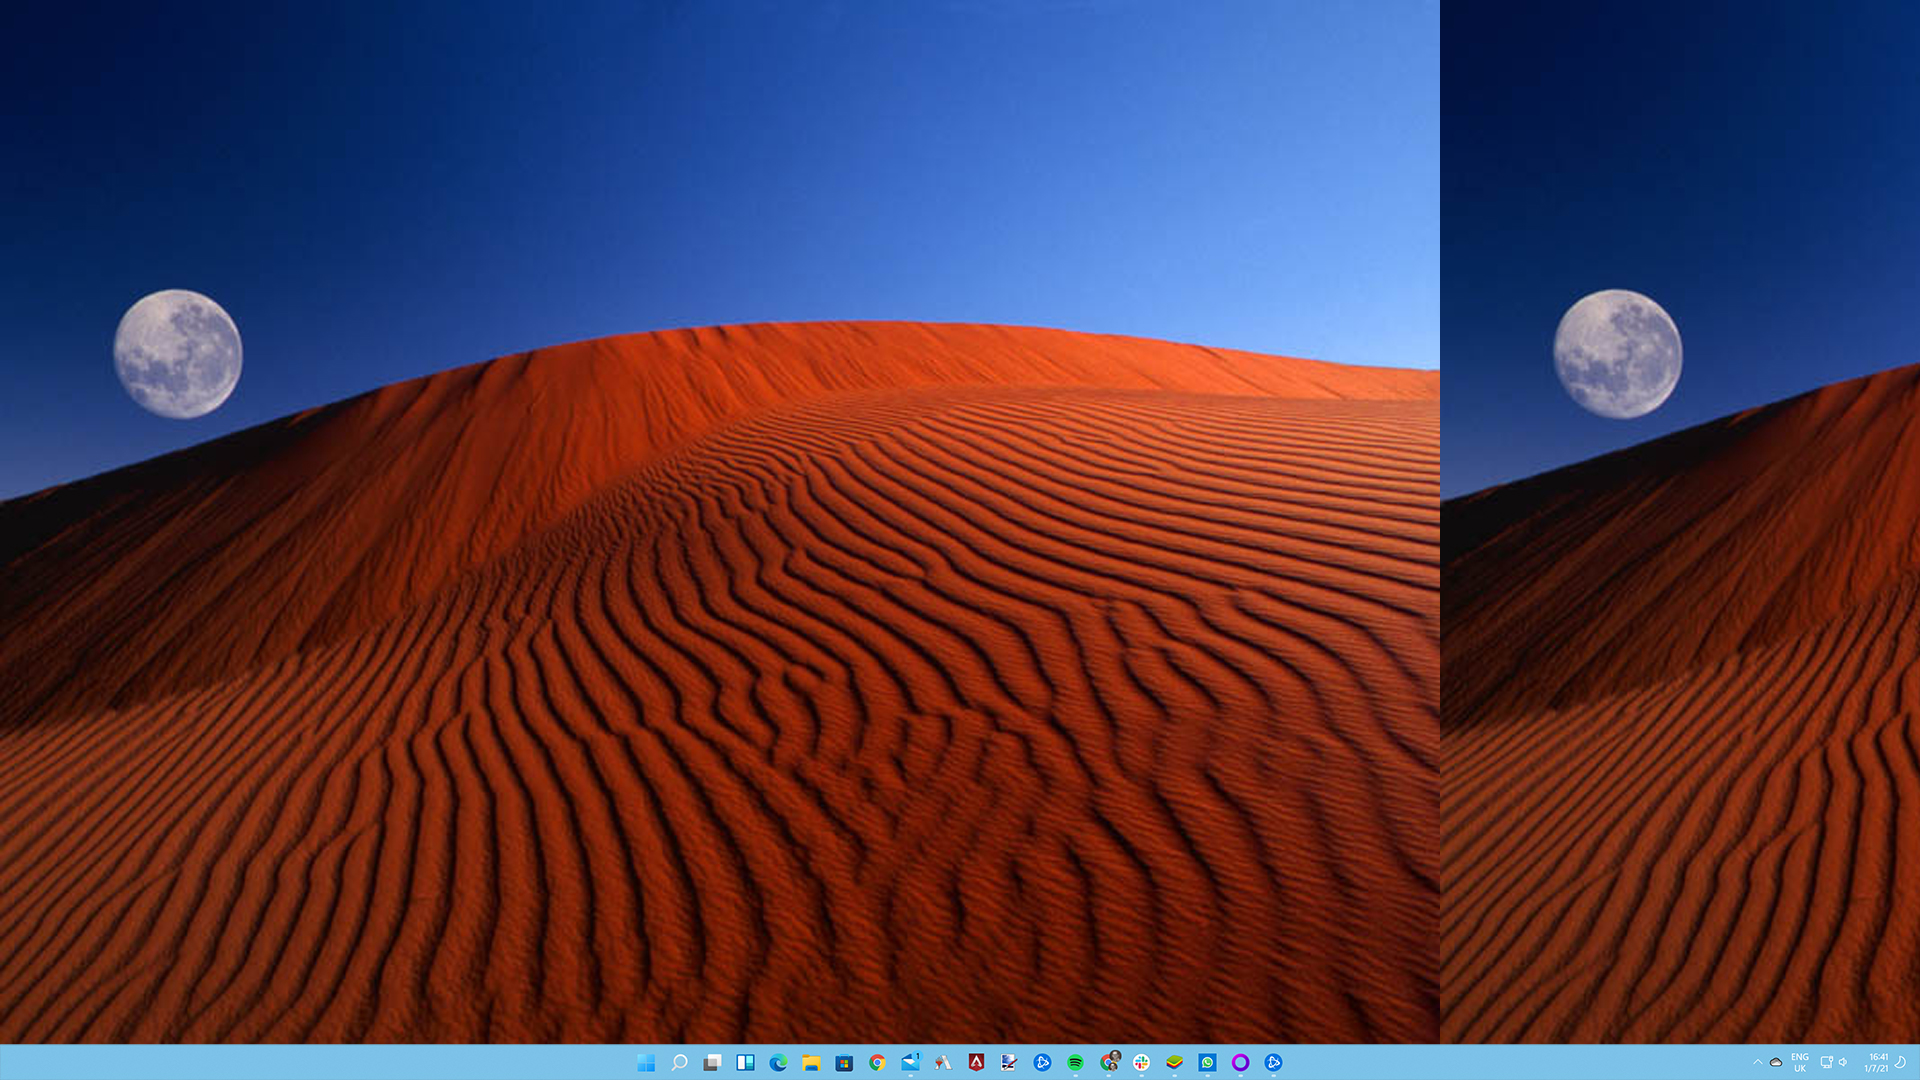 Microsoft Windows XP red moon desert wallpaper with red sand, the moon, and a blue sky